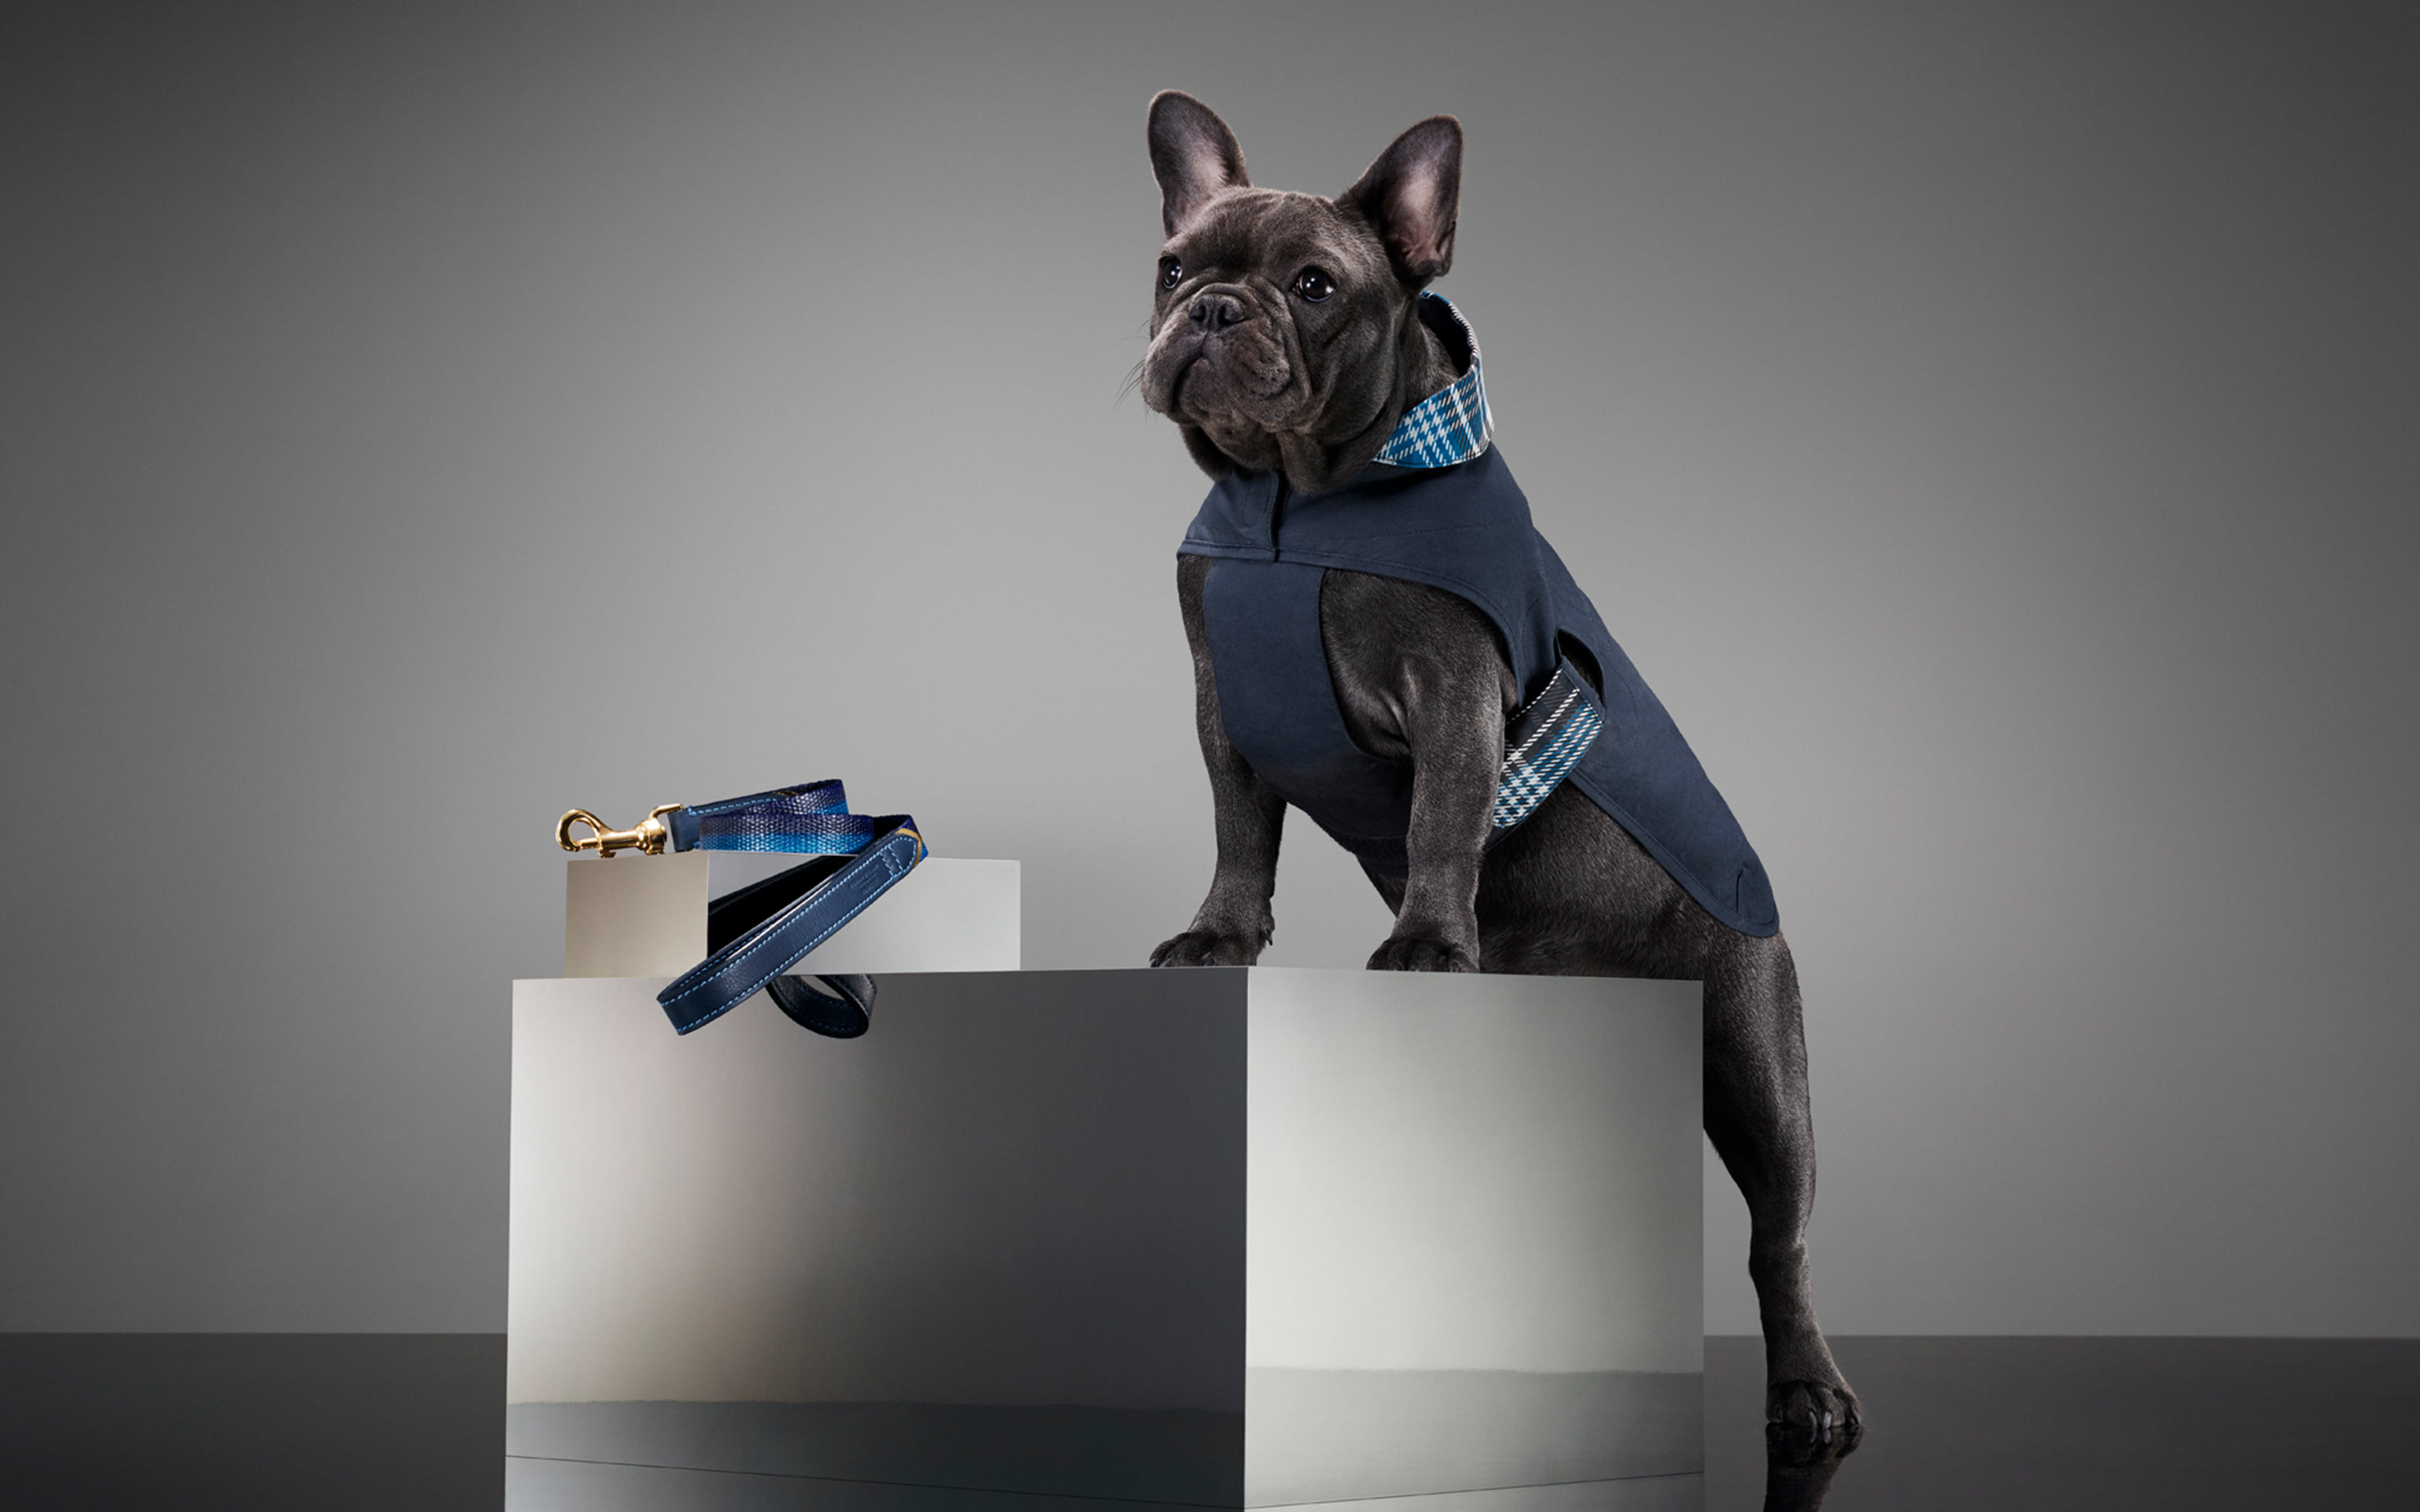 creative commercial photography of a pug standing on a grey box